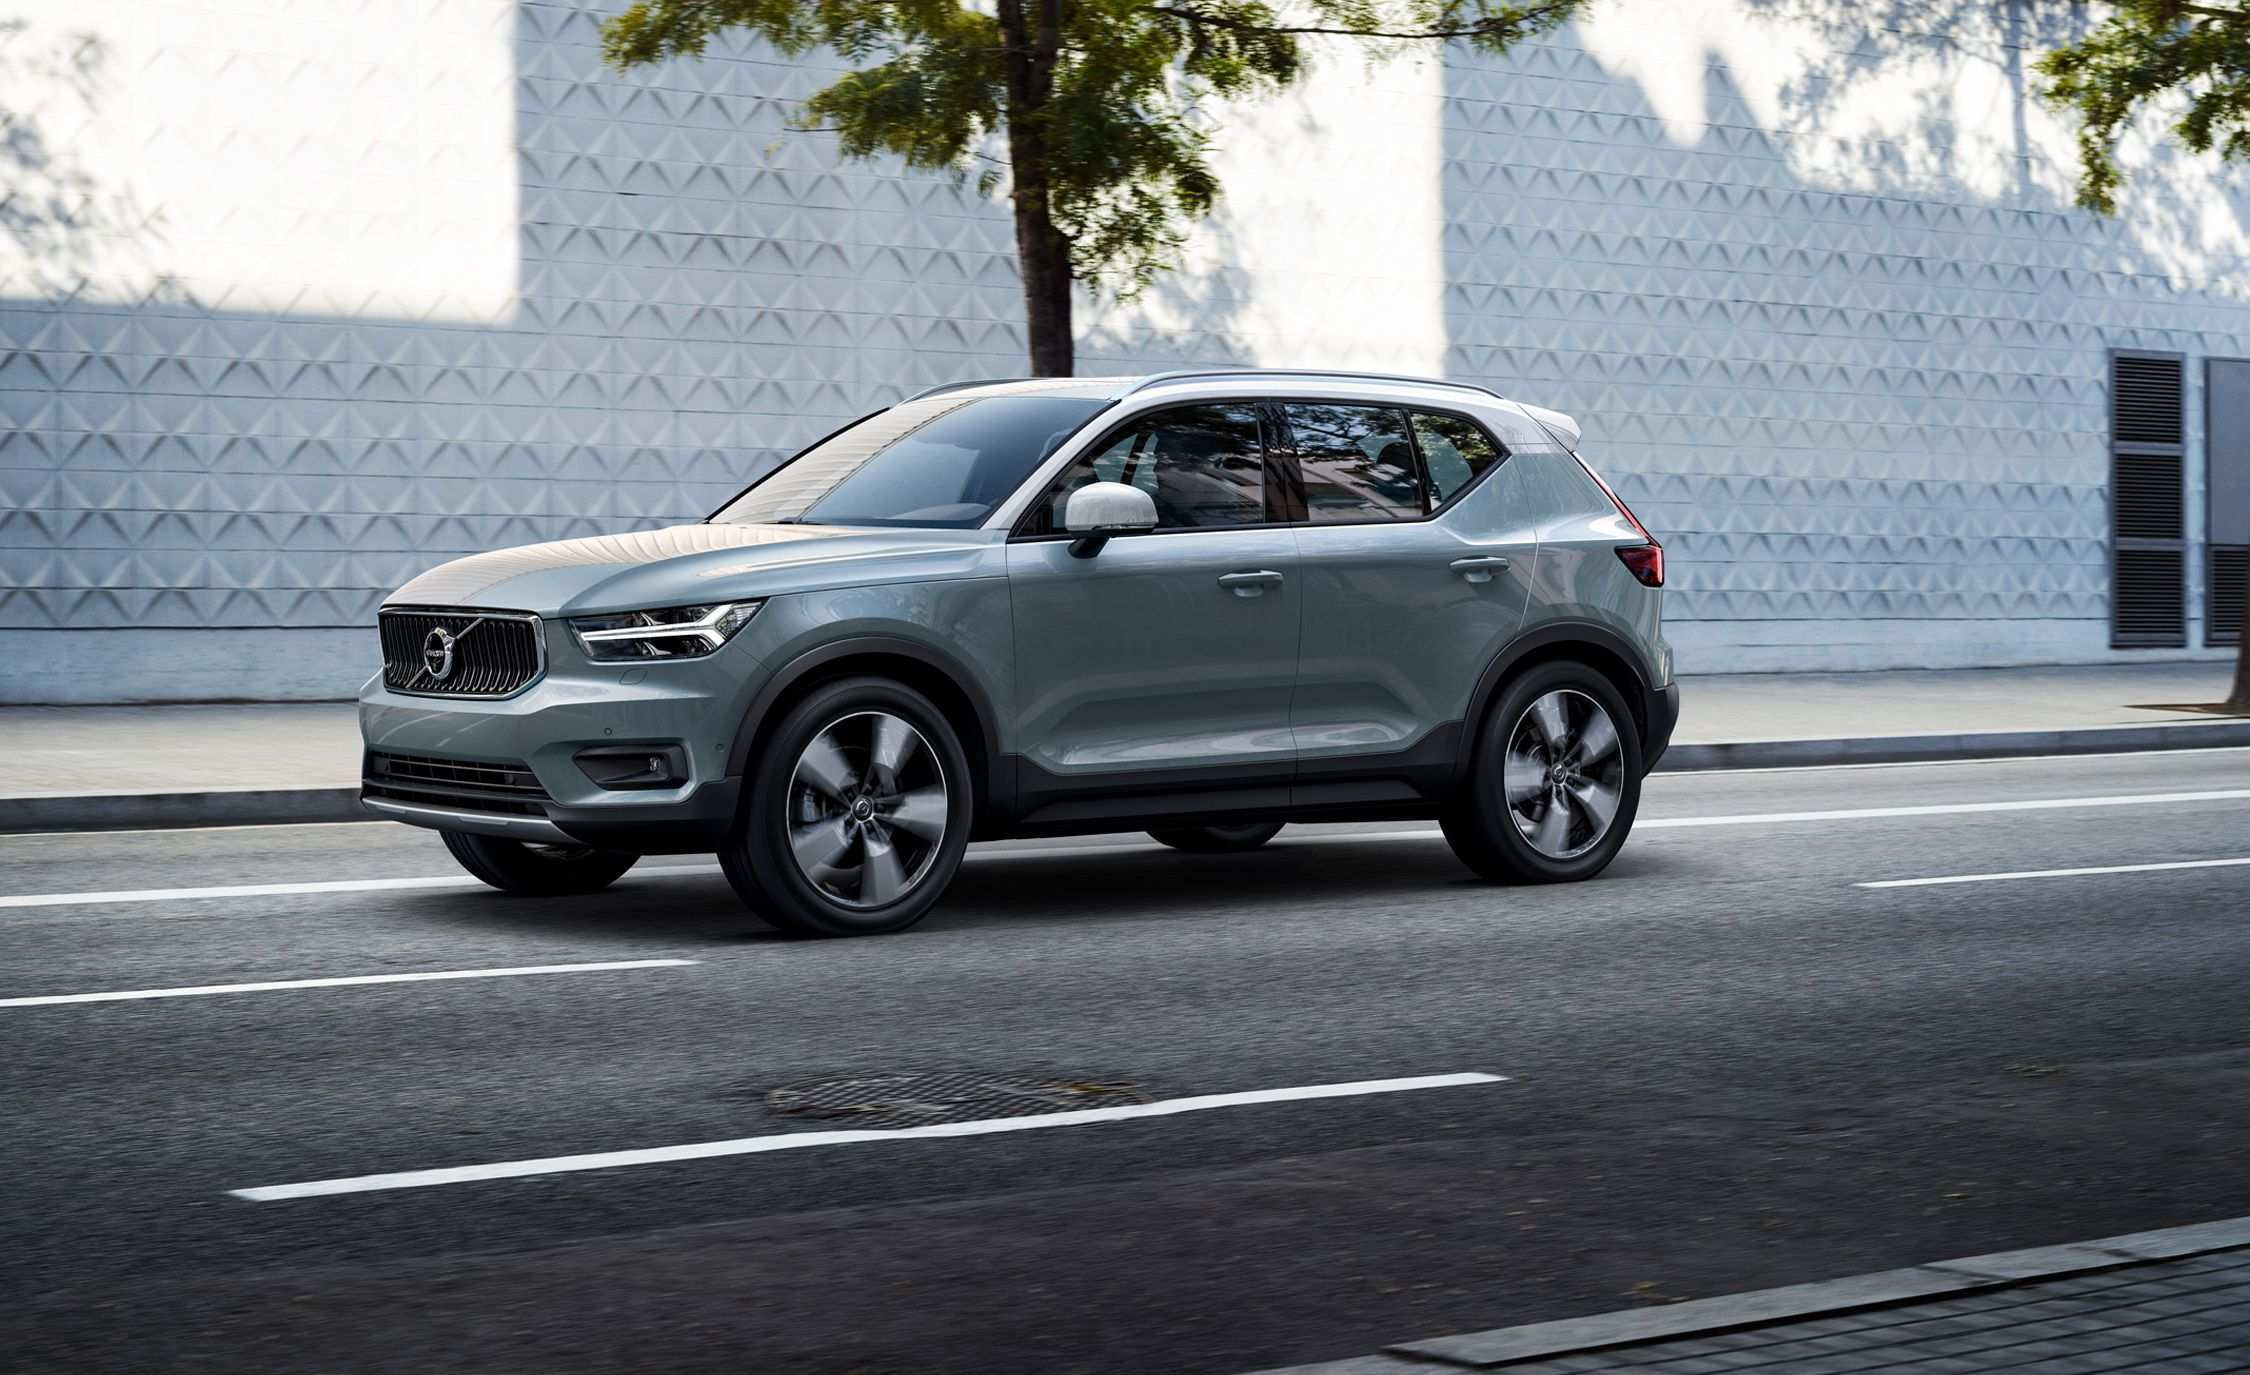 26 All New 2019 Volvo Xc40 Gas Mileage Performance and New Engine with 2019 Volvo Xc40 Gas Mileage